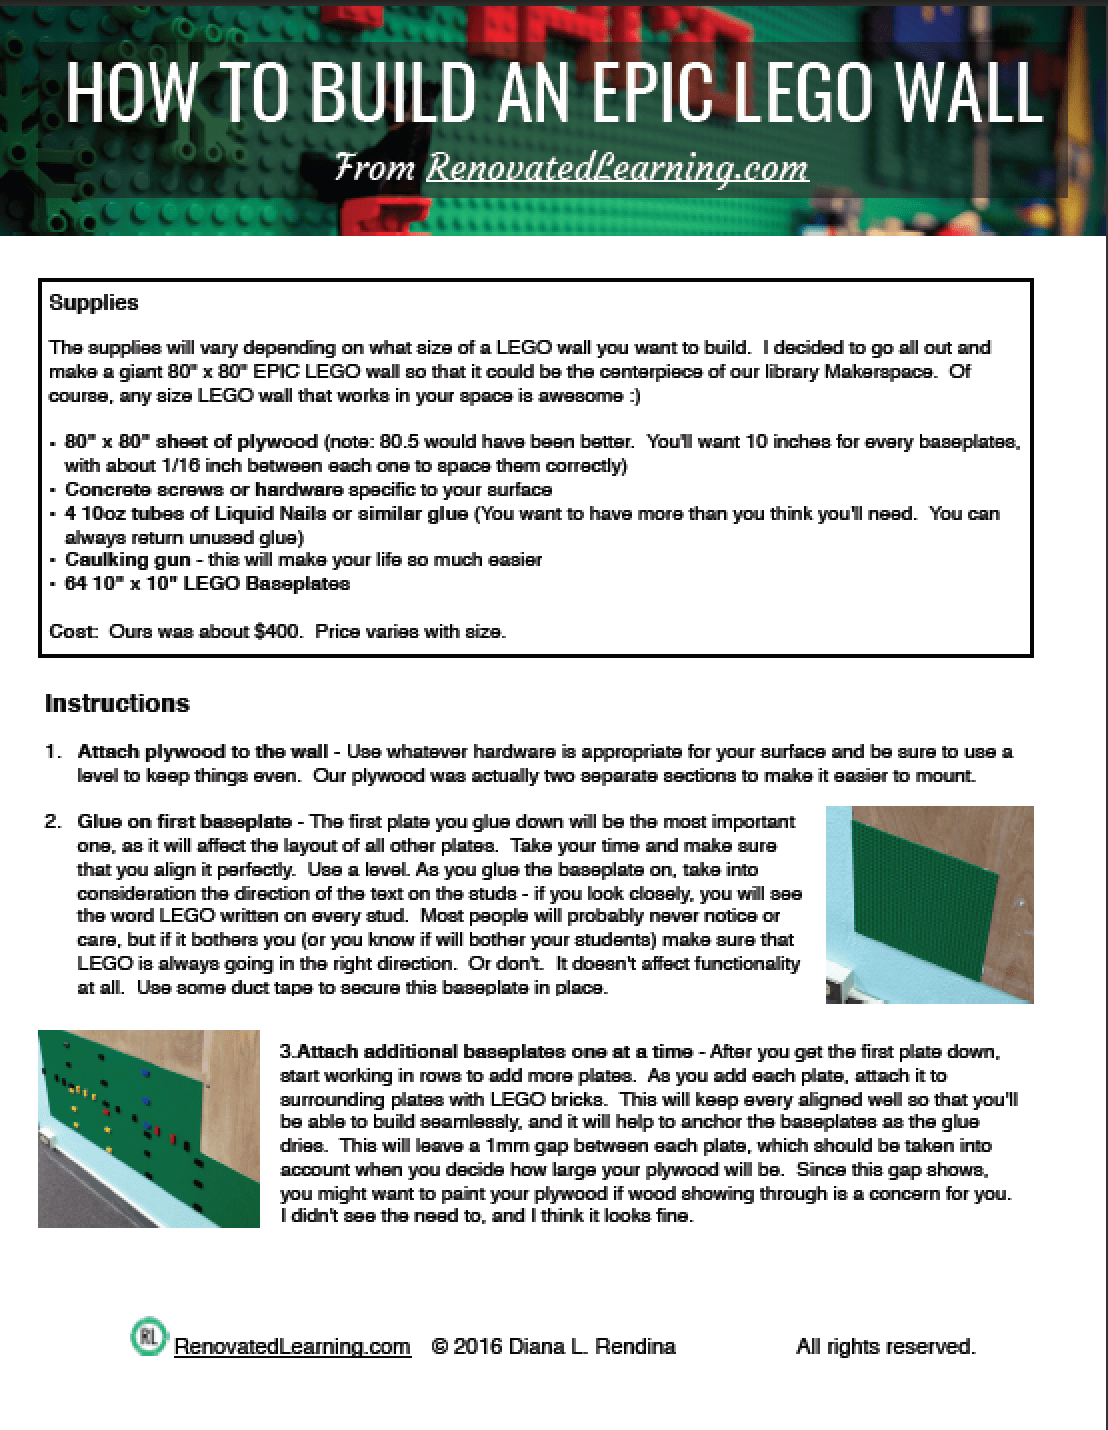 How To Build An Epic Lego Wall Renovated Learning X 10 3 Way Switch Wiring Diagram If Youre The Type Of Person Who Loves Print Instructions Out Ive Created A Printable Pdf Just For You